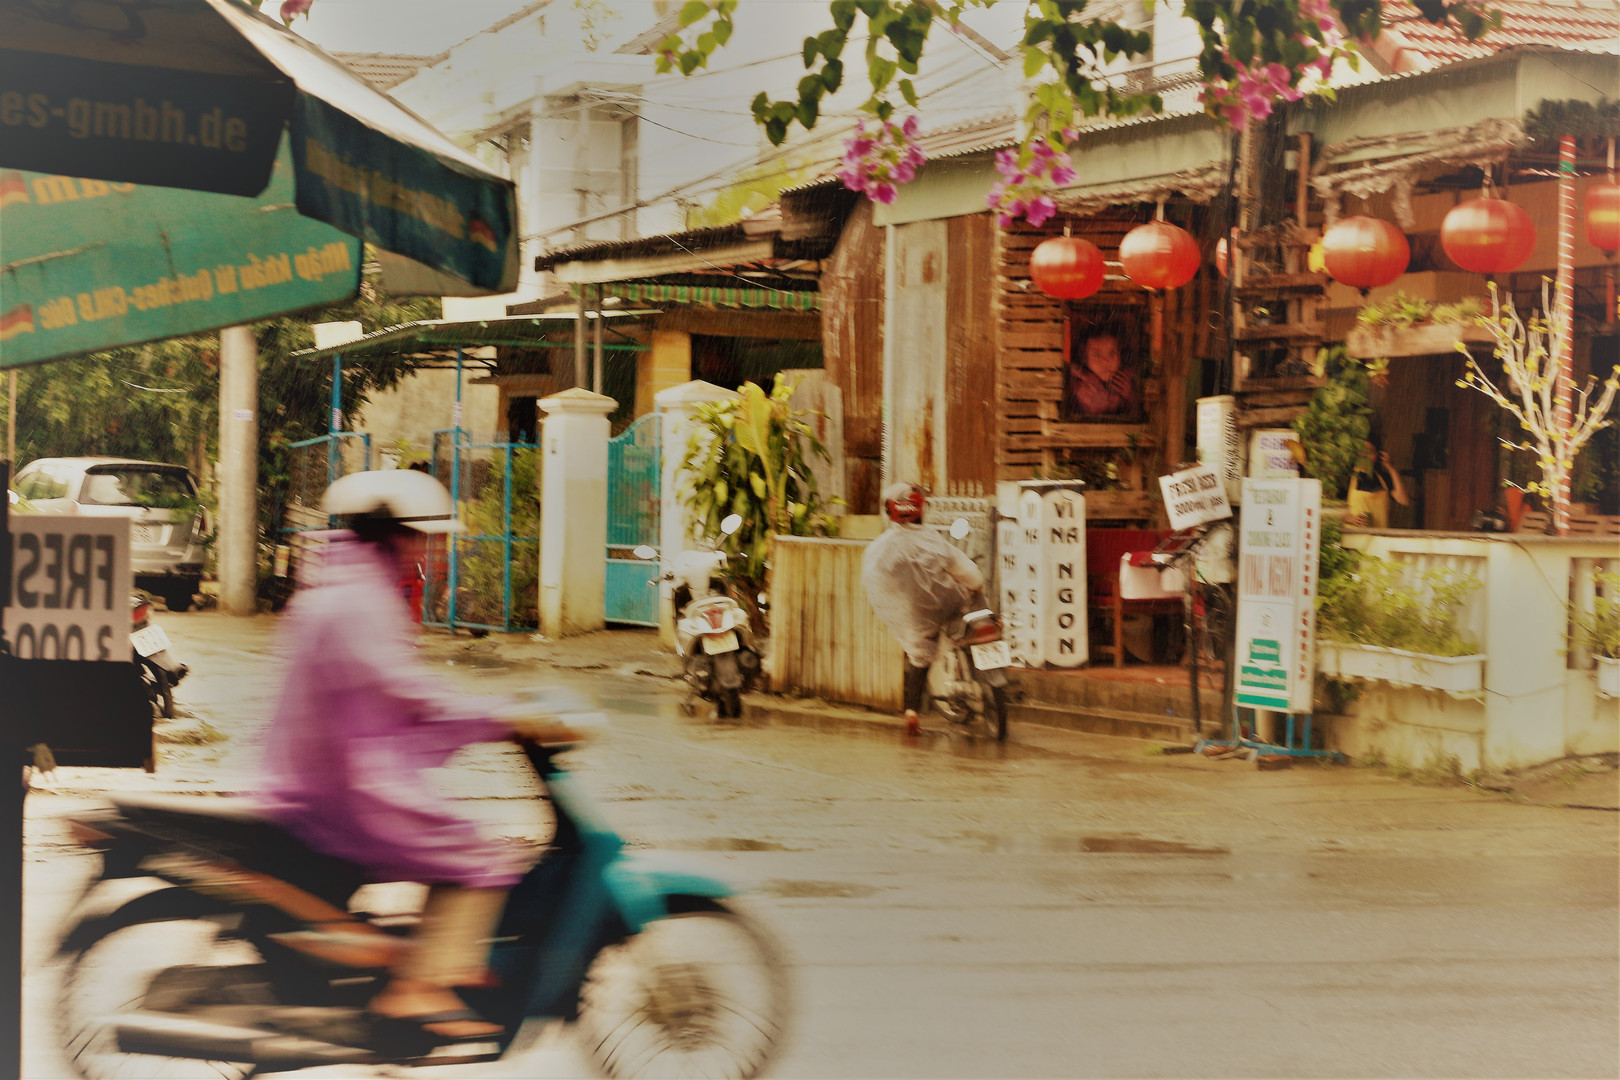 Vietnam, Hoi An mouvement 1